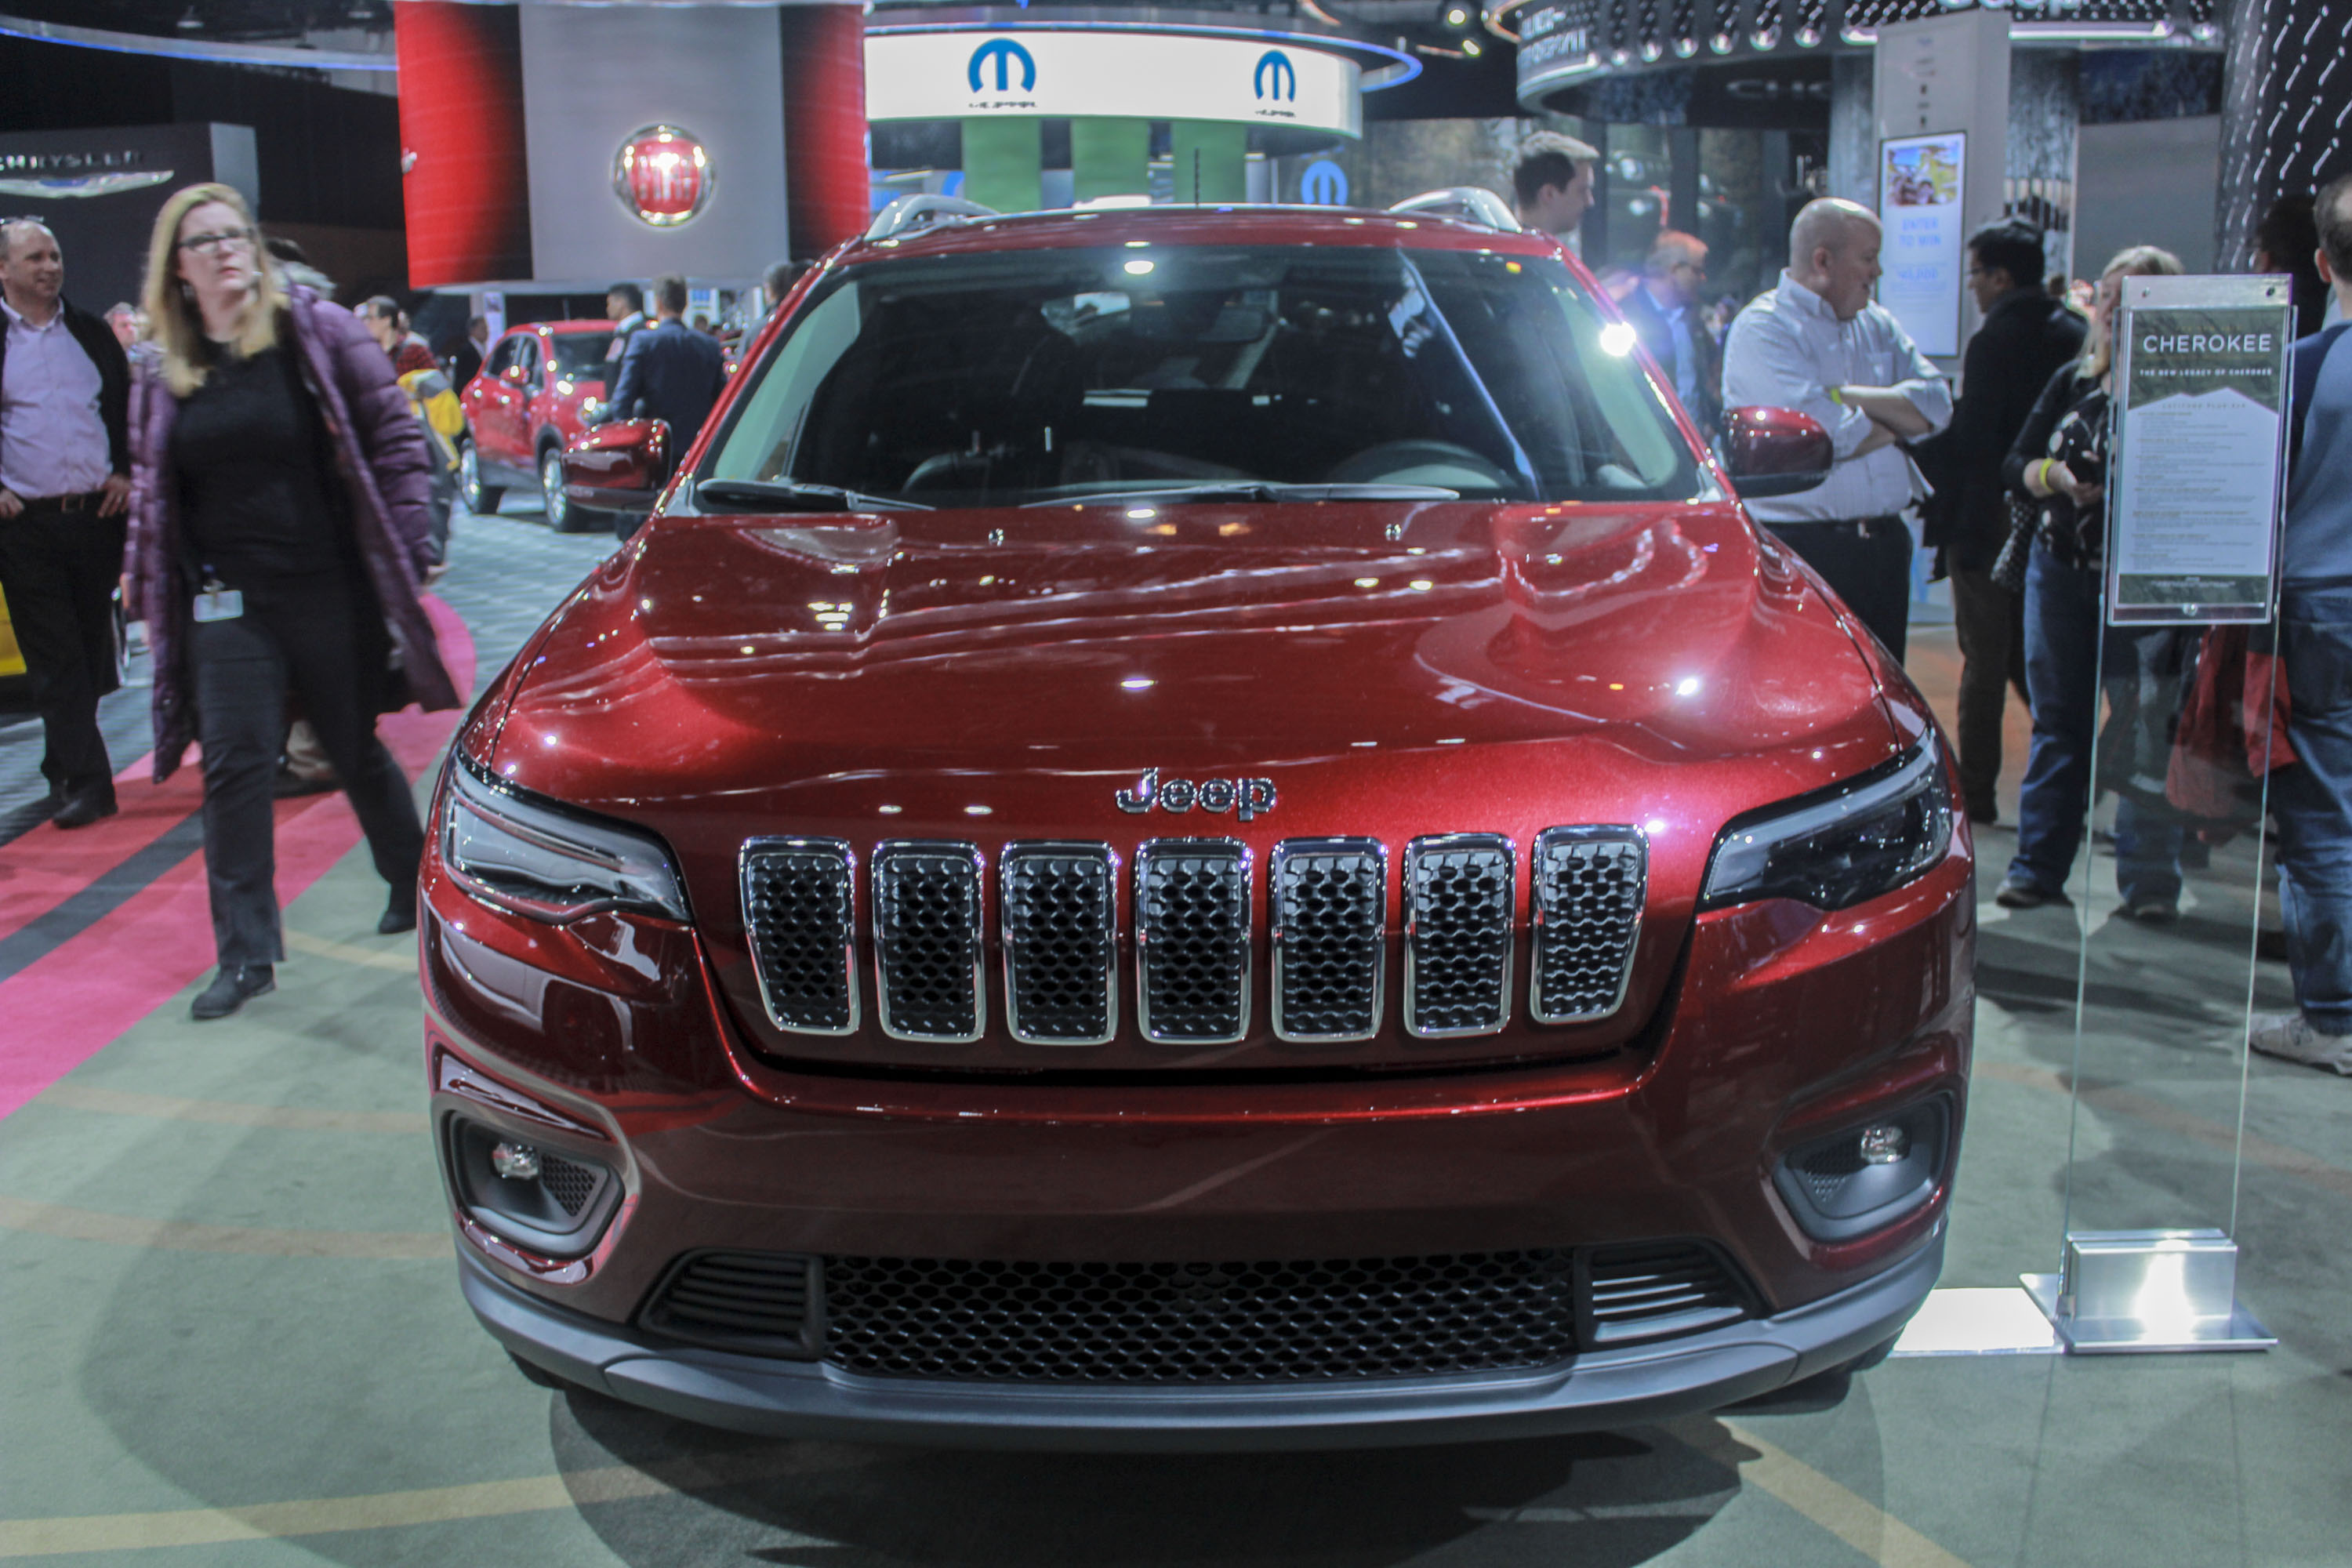 overland review diesel cherokee jeep price